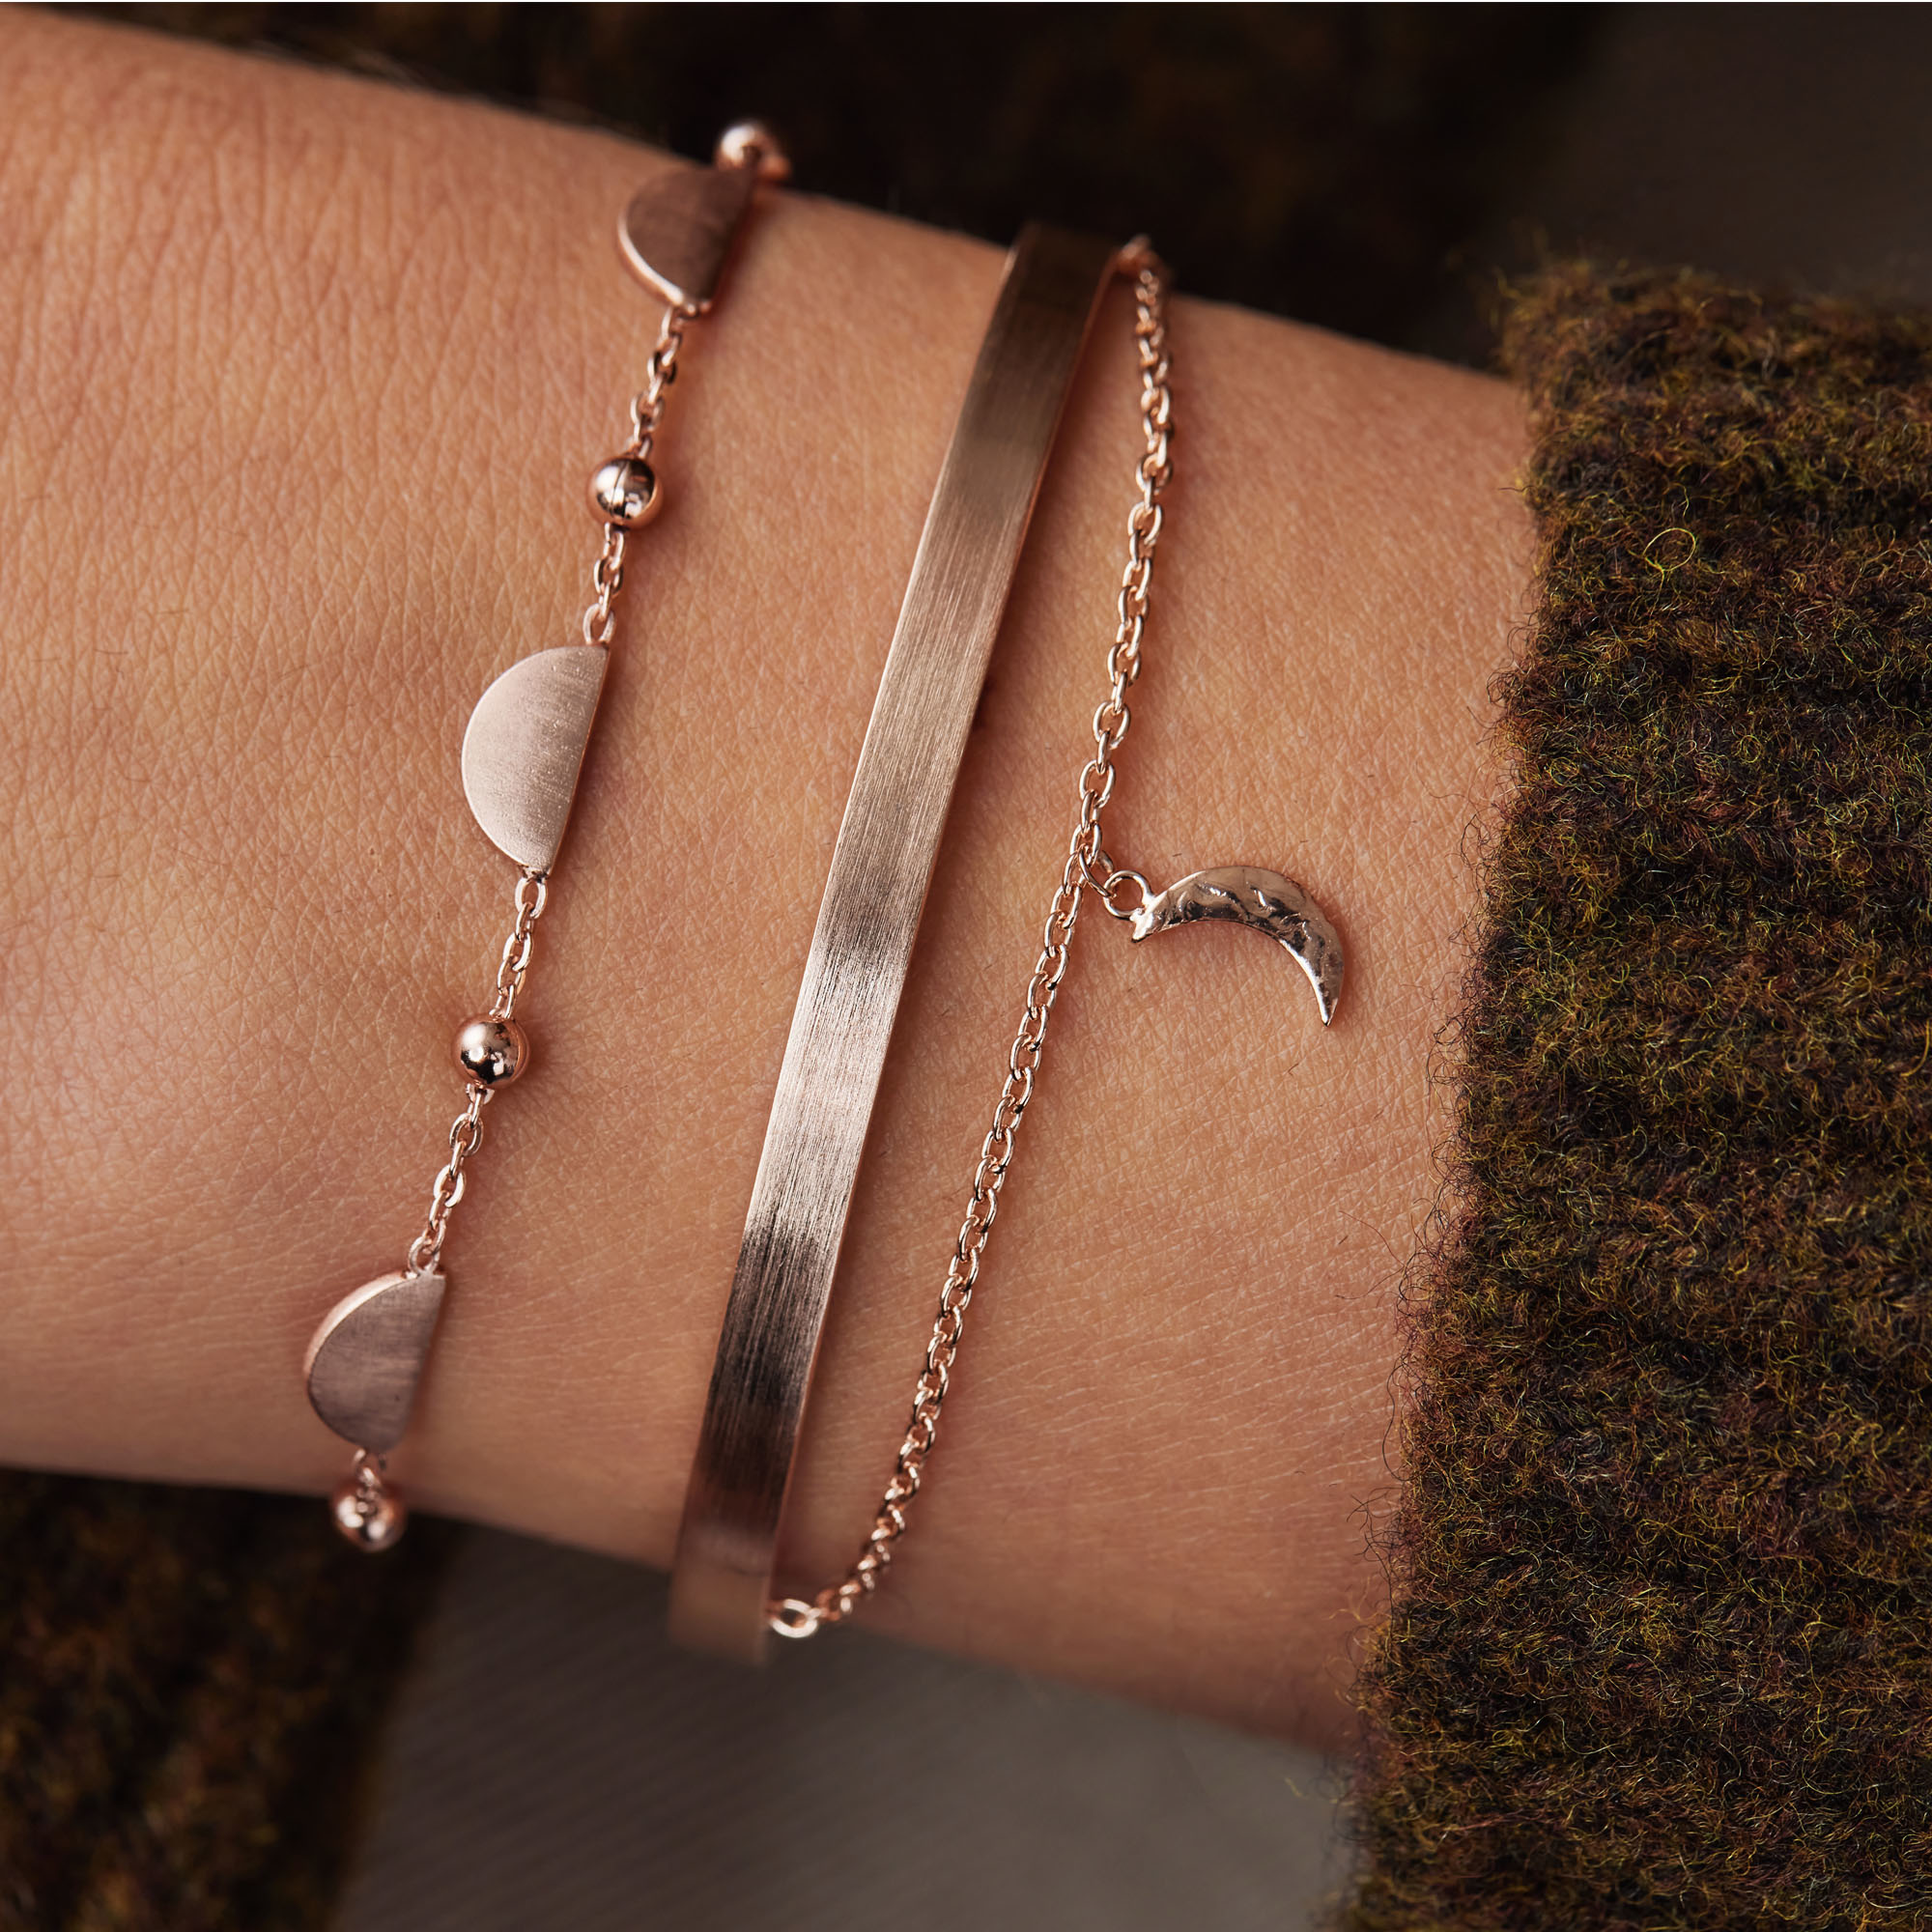 Violet Hamden Luna 925 sterling silver rose gold colored double bracelet and moons